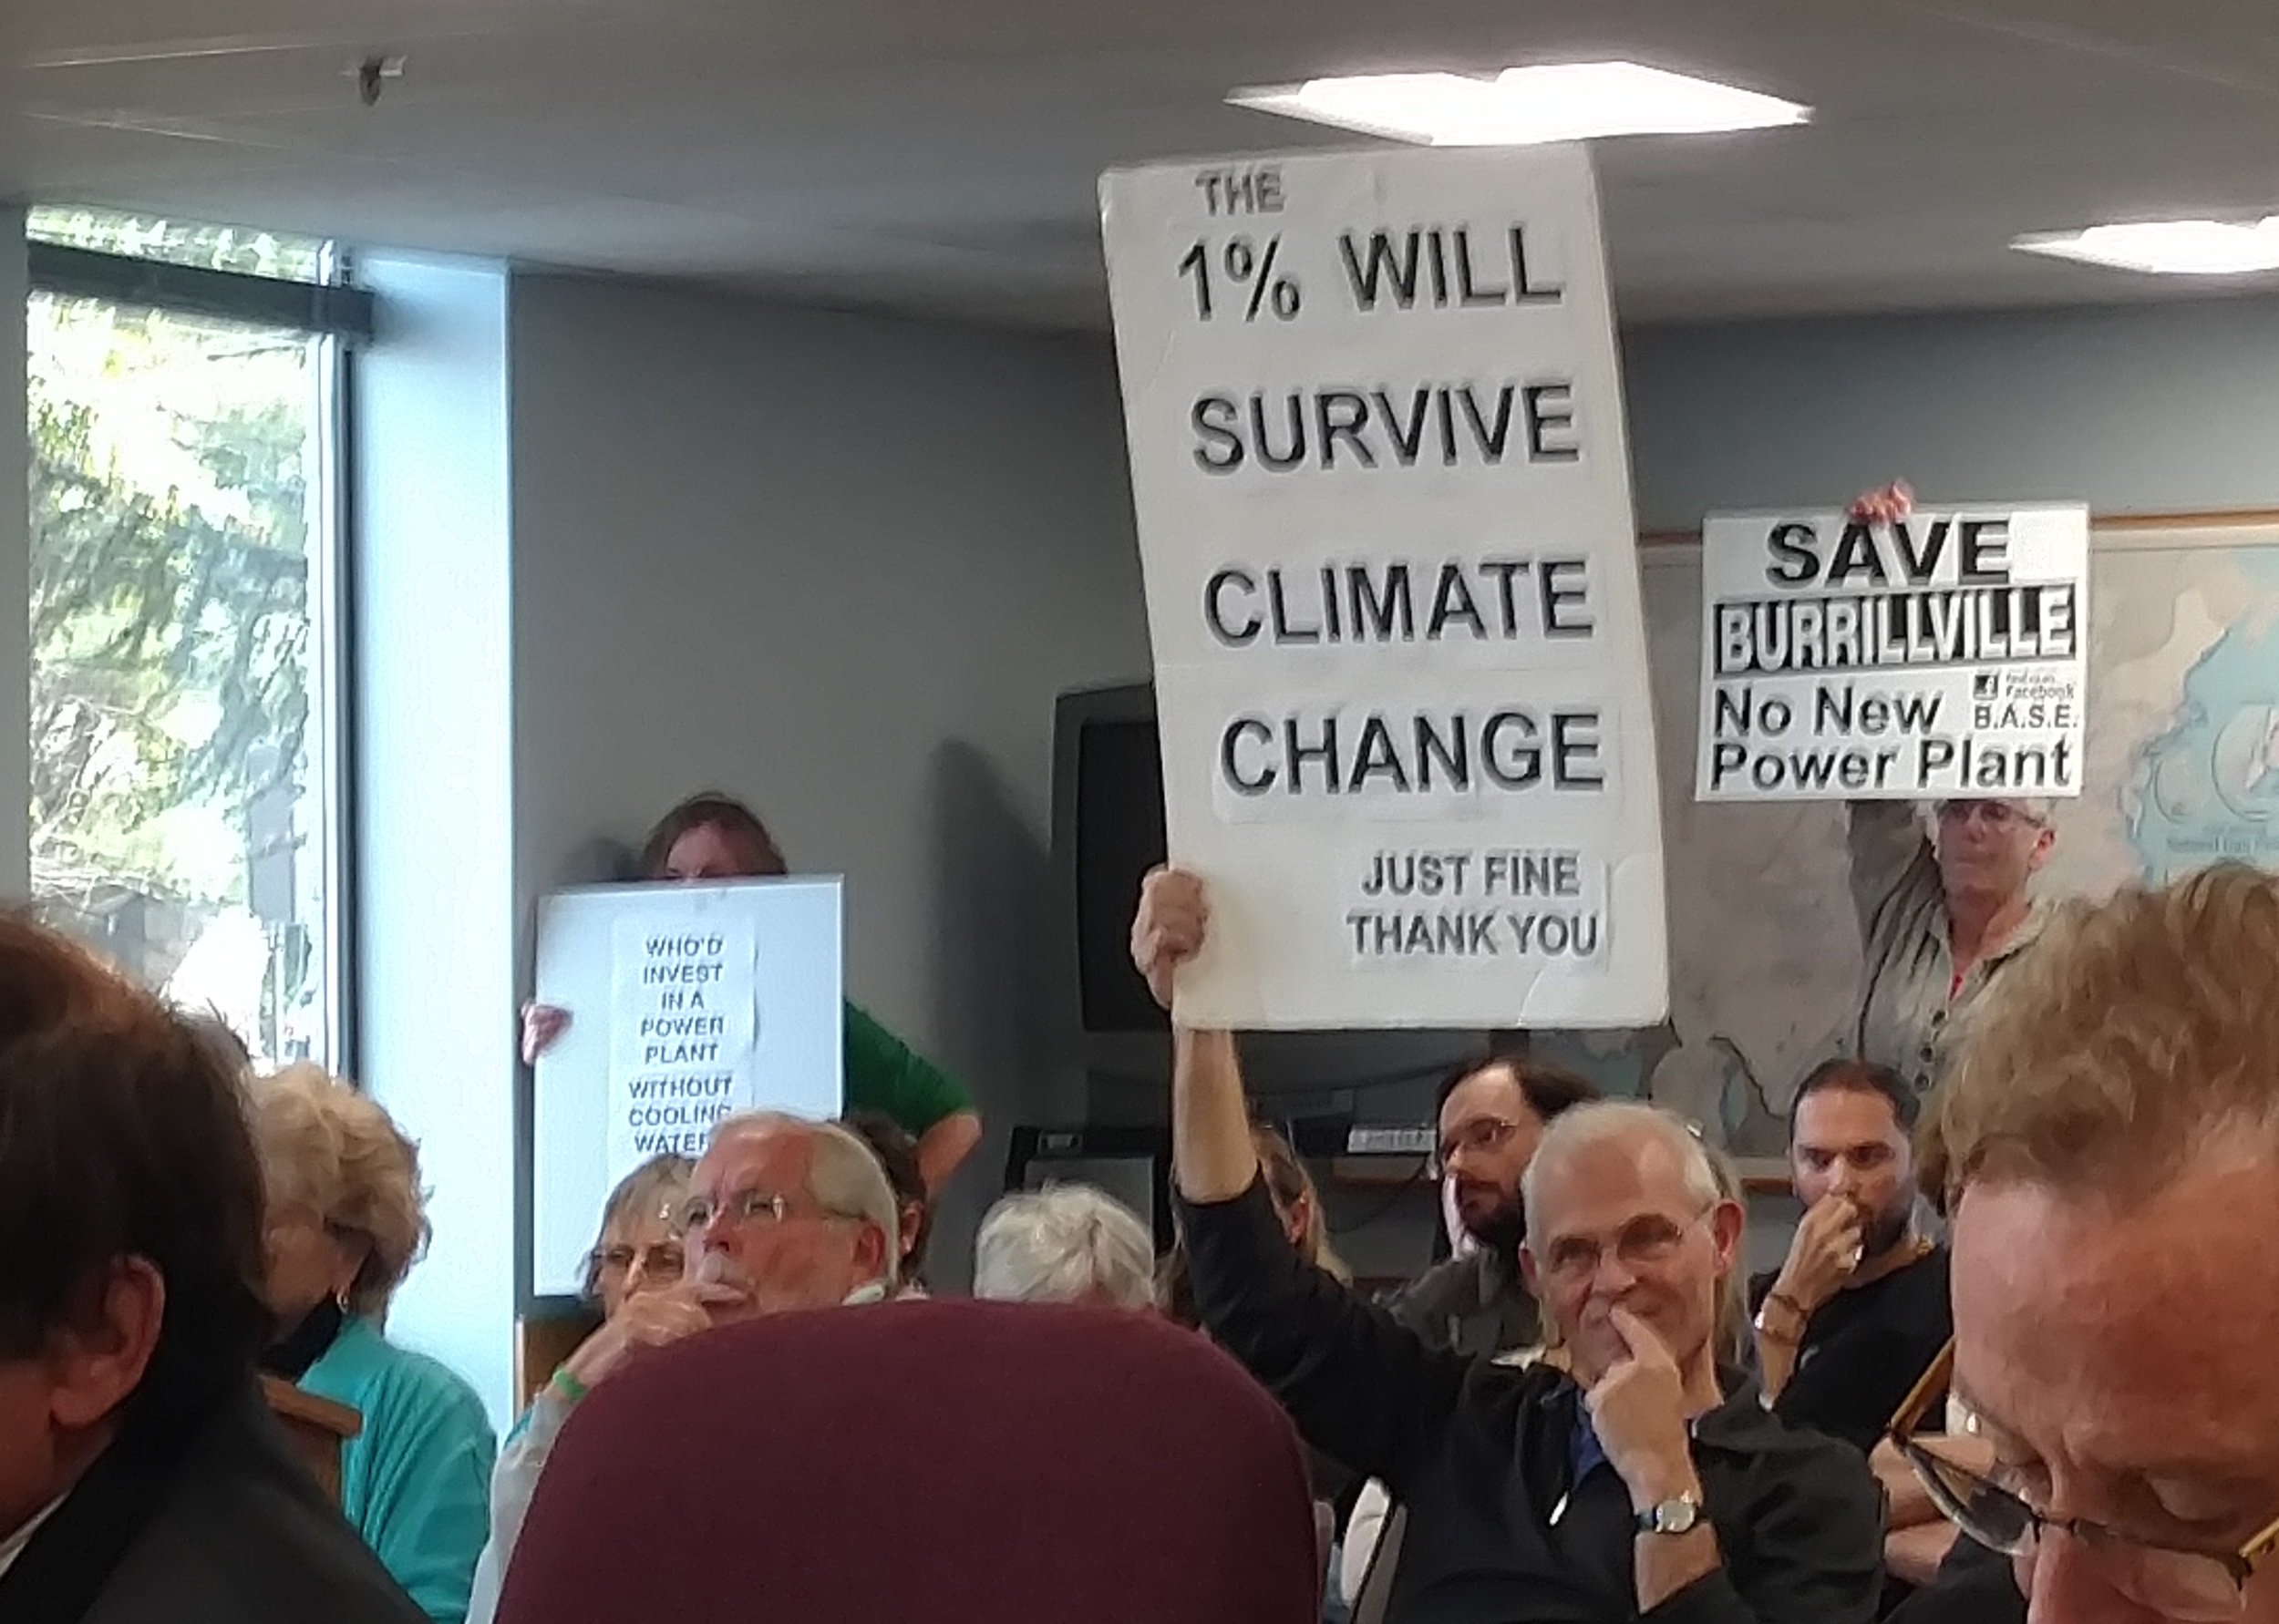 Opponents of the proposed fossil-fuel power plant let their feelings be known during the Oct. 13 hearing. (Tim Faulkner/ecoRI News)